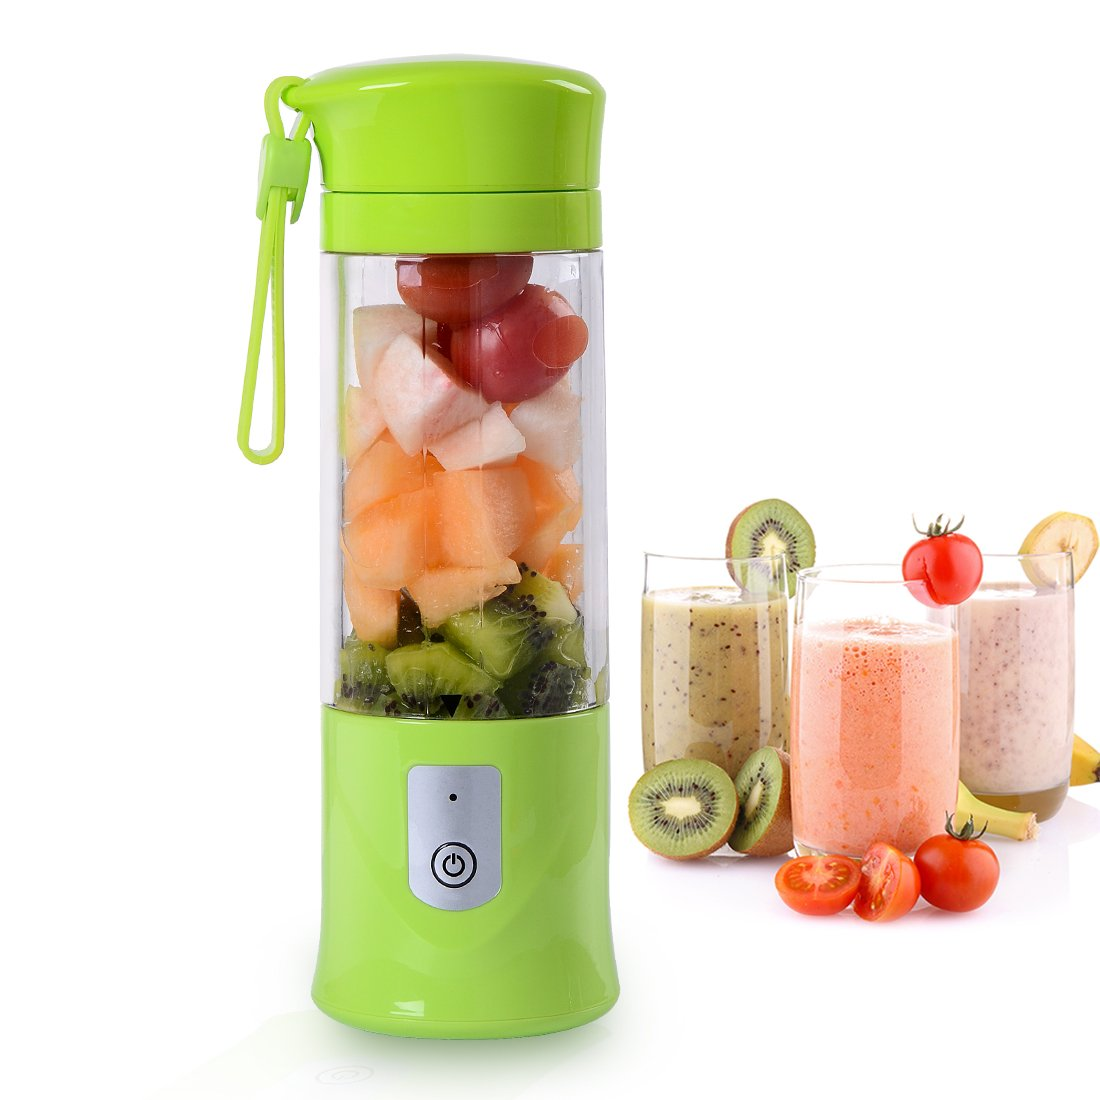 Portable Blender Ordergo USB Juicer Cup Fruit Smoothie Baby Food Mixing Machine with Powerful Motor 2x2000mAh High Capacity Batteries - Green ZSK